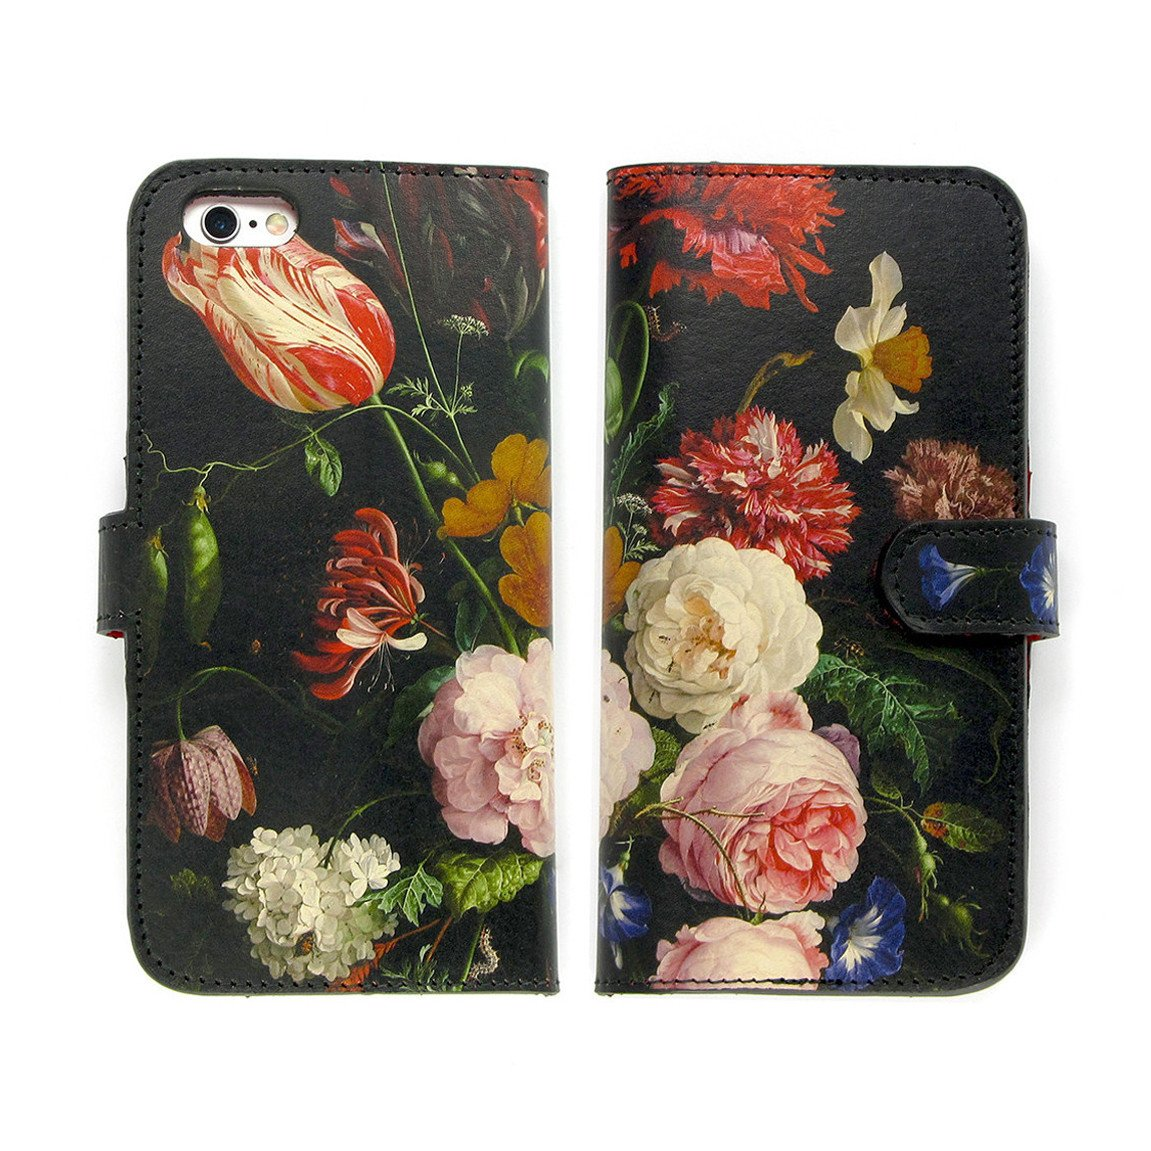 Eco friendly phone cases – black floral leather phone case with Dutch Masters print – iPhone 11 Pro Max - sweet pea print - pink flowers - Rachel Rusch